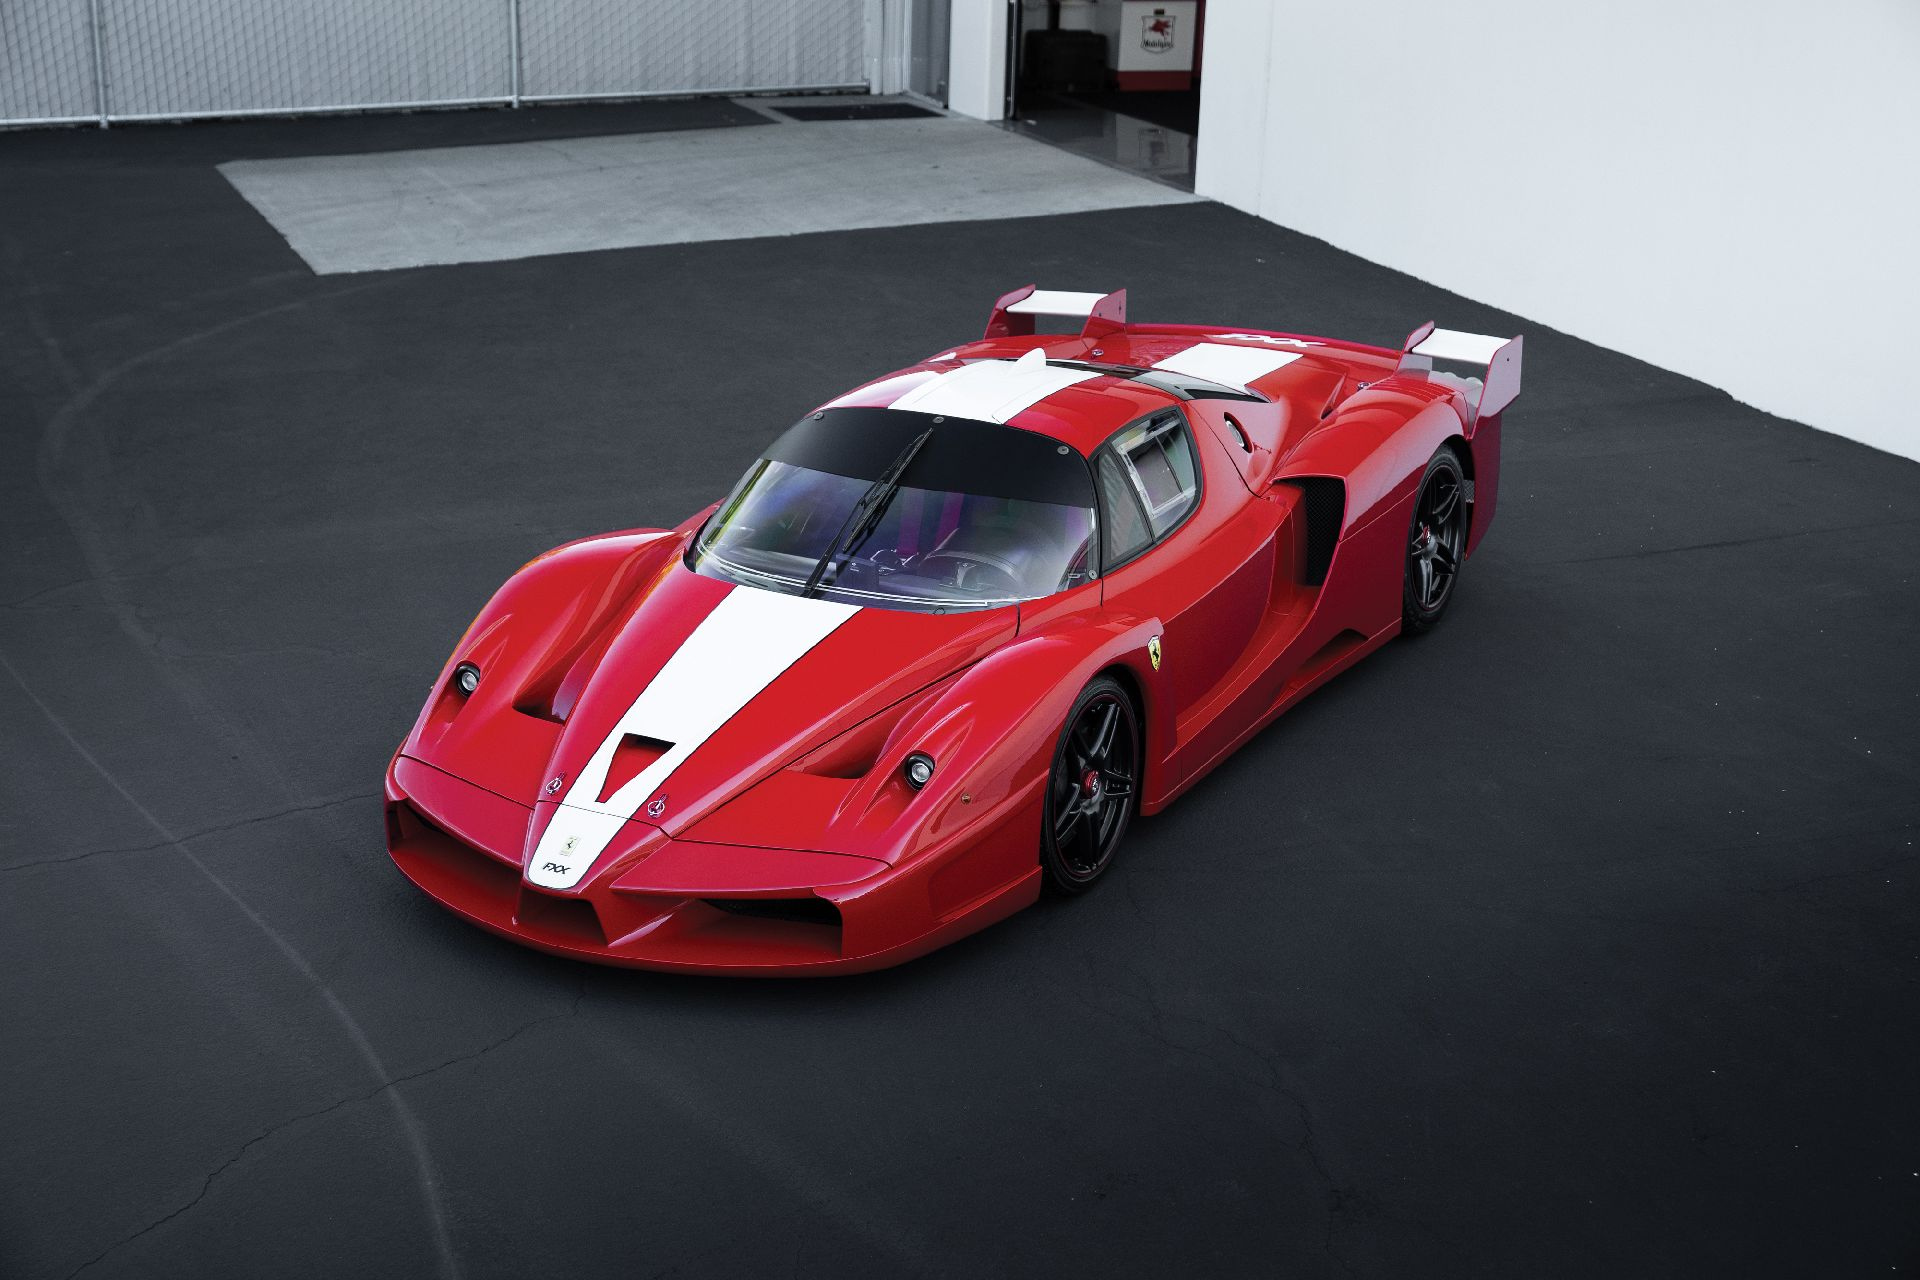 2e5fe7ba-ferrari-fxx-auction-24